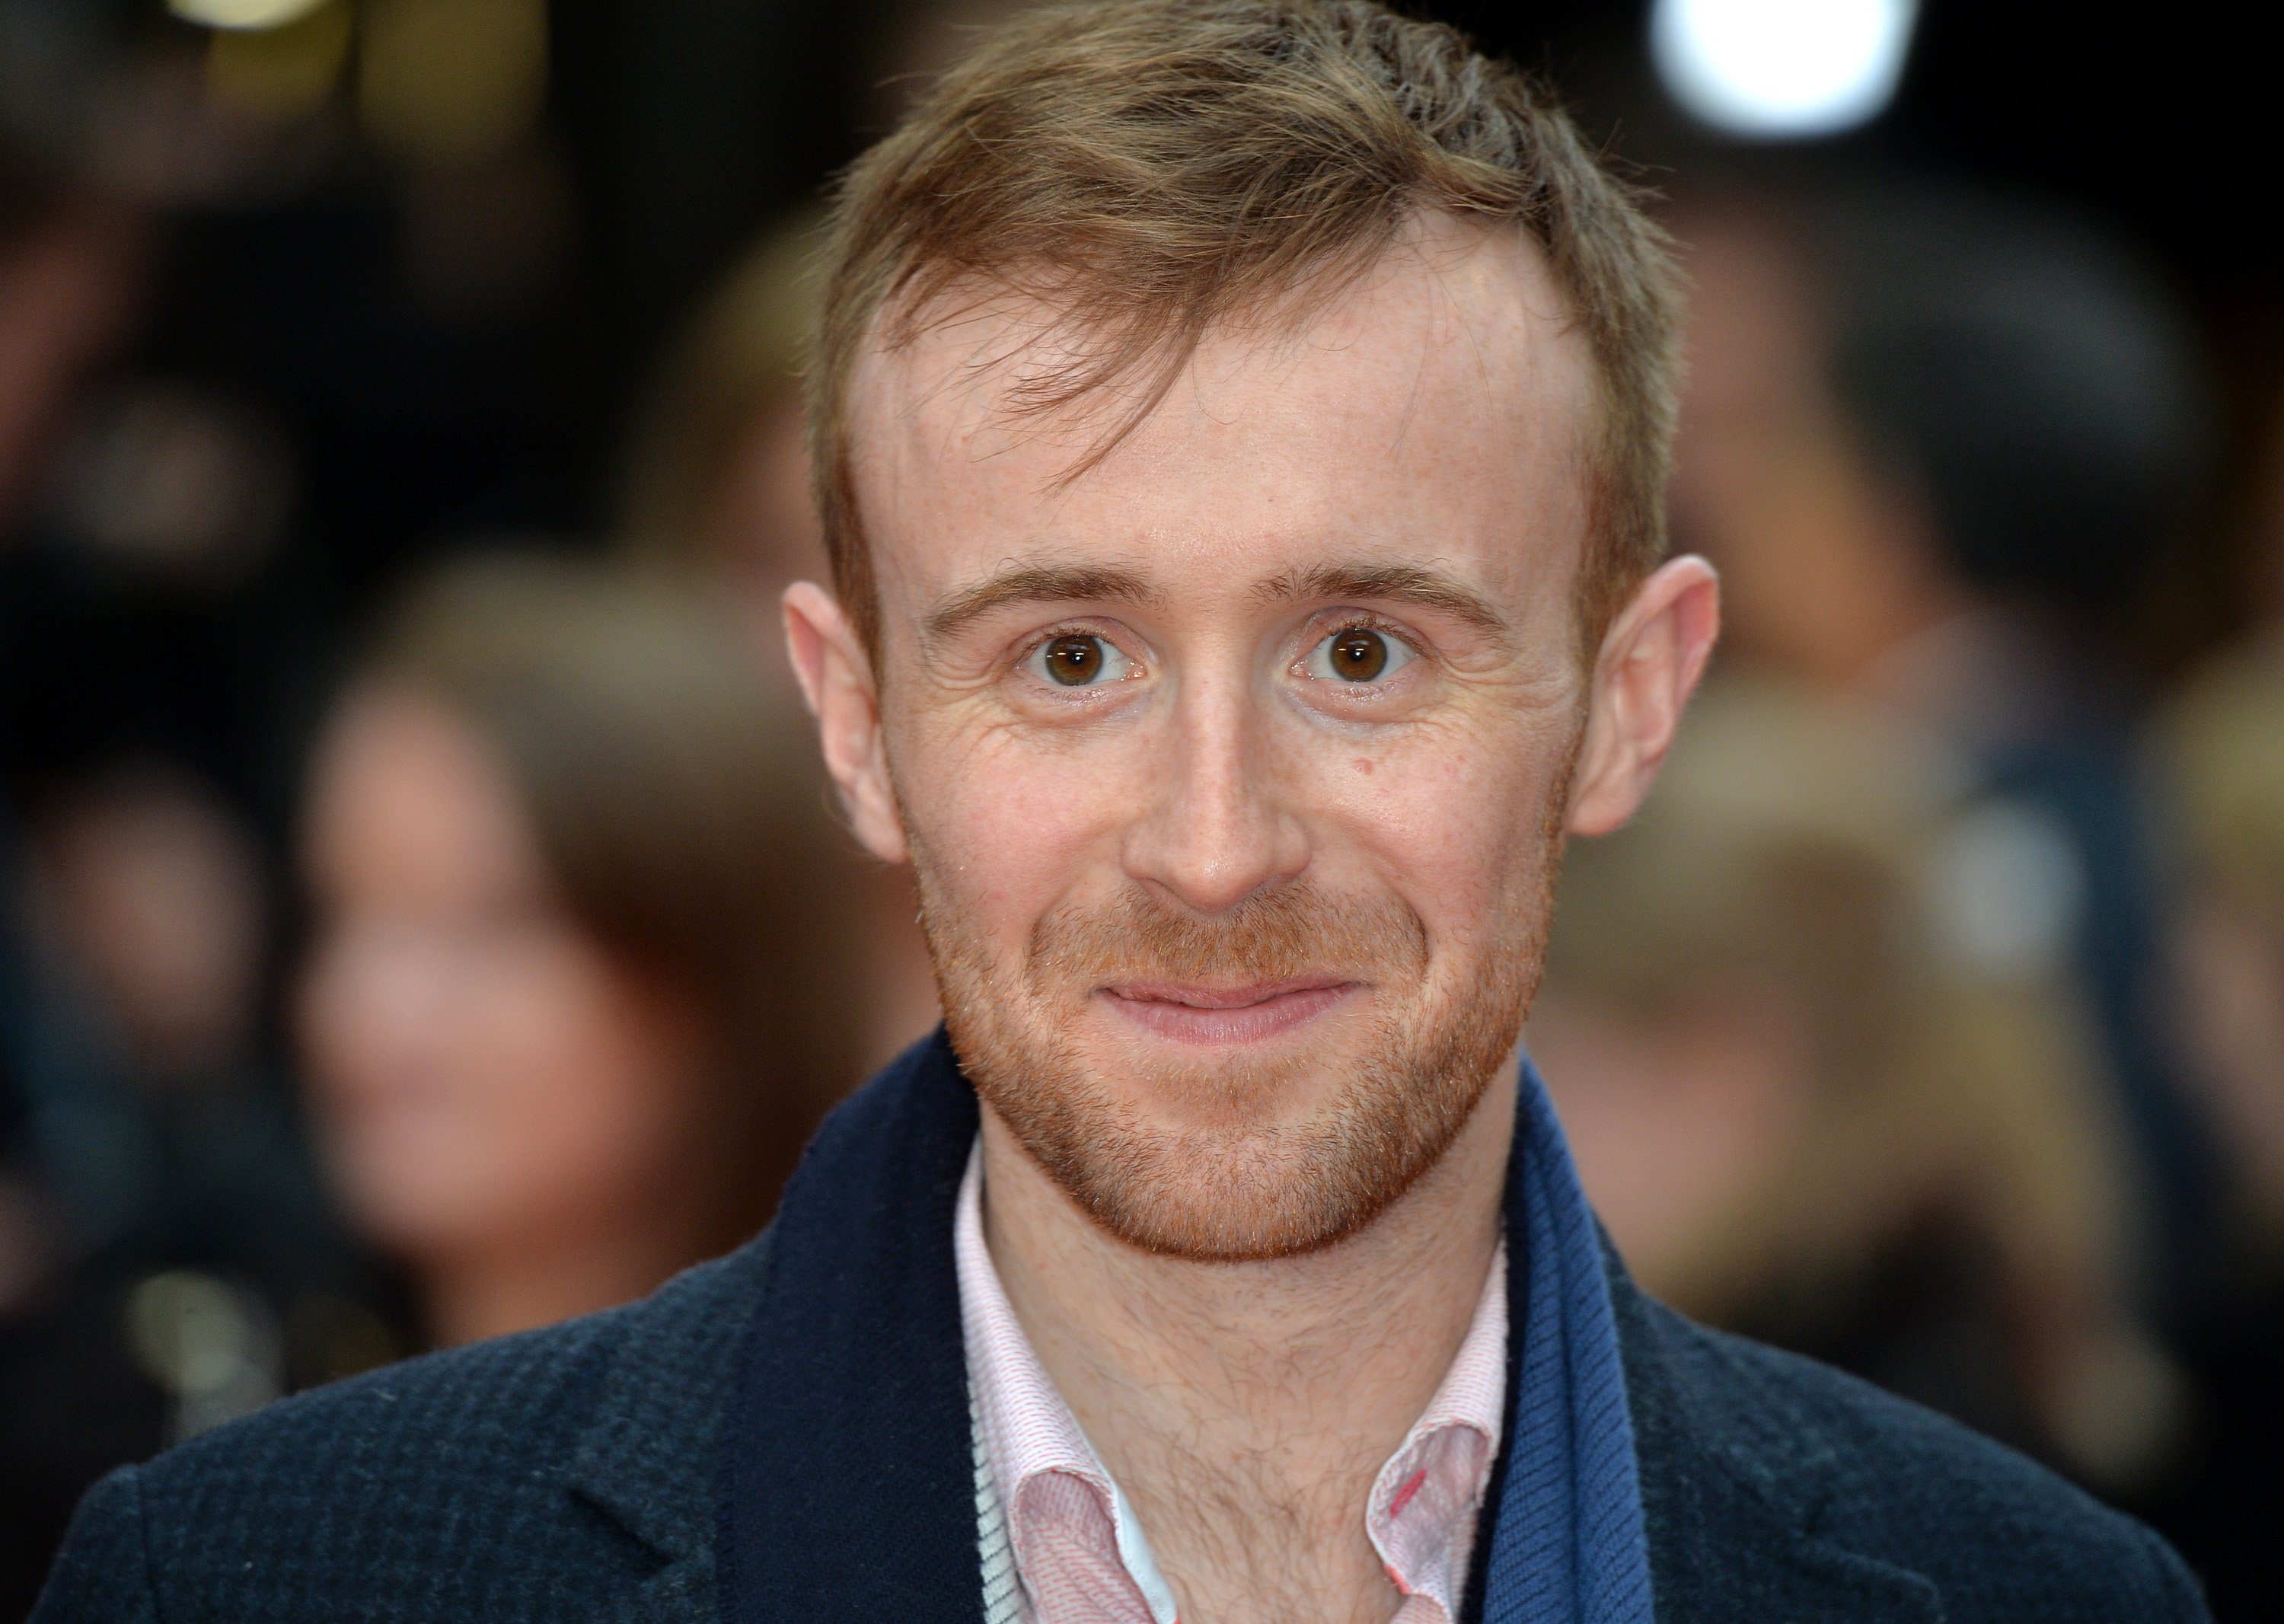 LONDON, ENGLAND - APRIL 11:  John Heffernan attends the UK premiere of  Eye In The Sky  on April 11, 2016 in London, United Kingdom.  (Photo by Anthony Harvey/Getty Images)